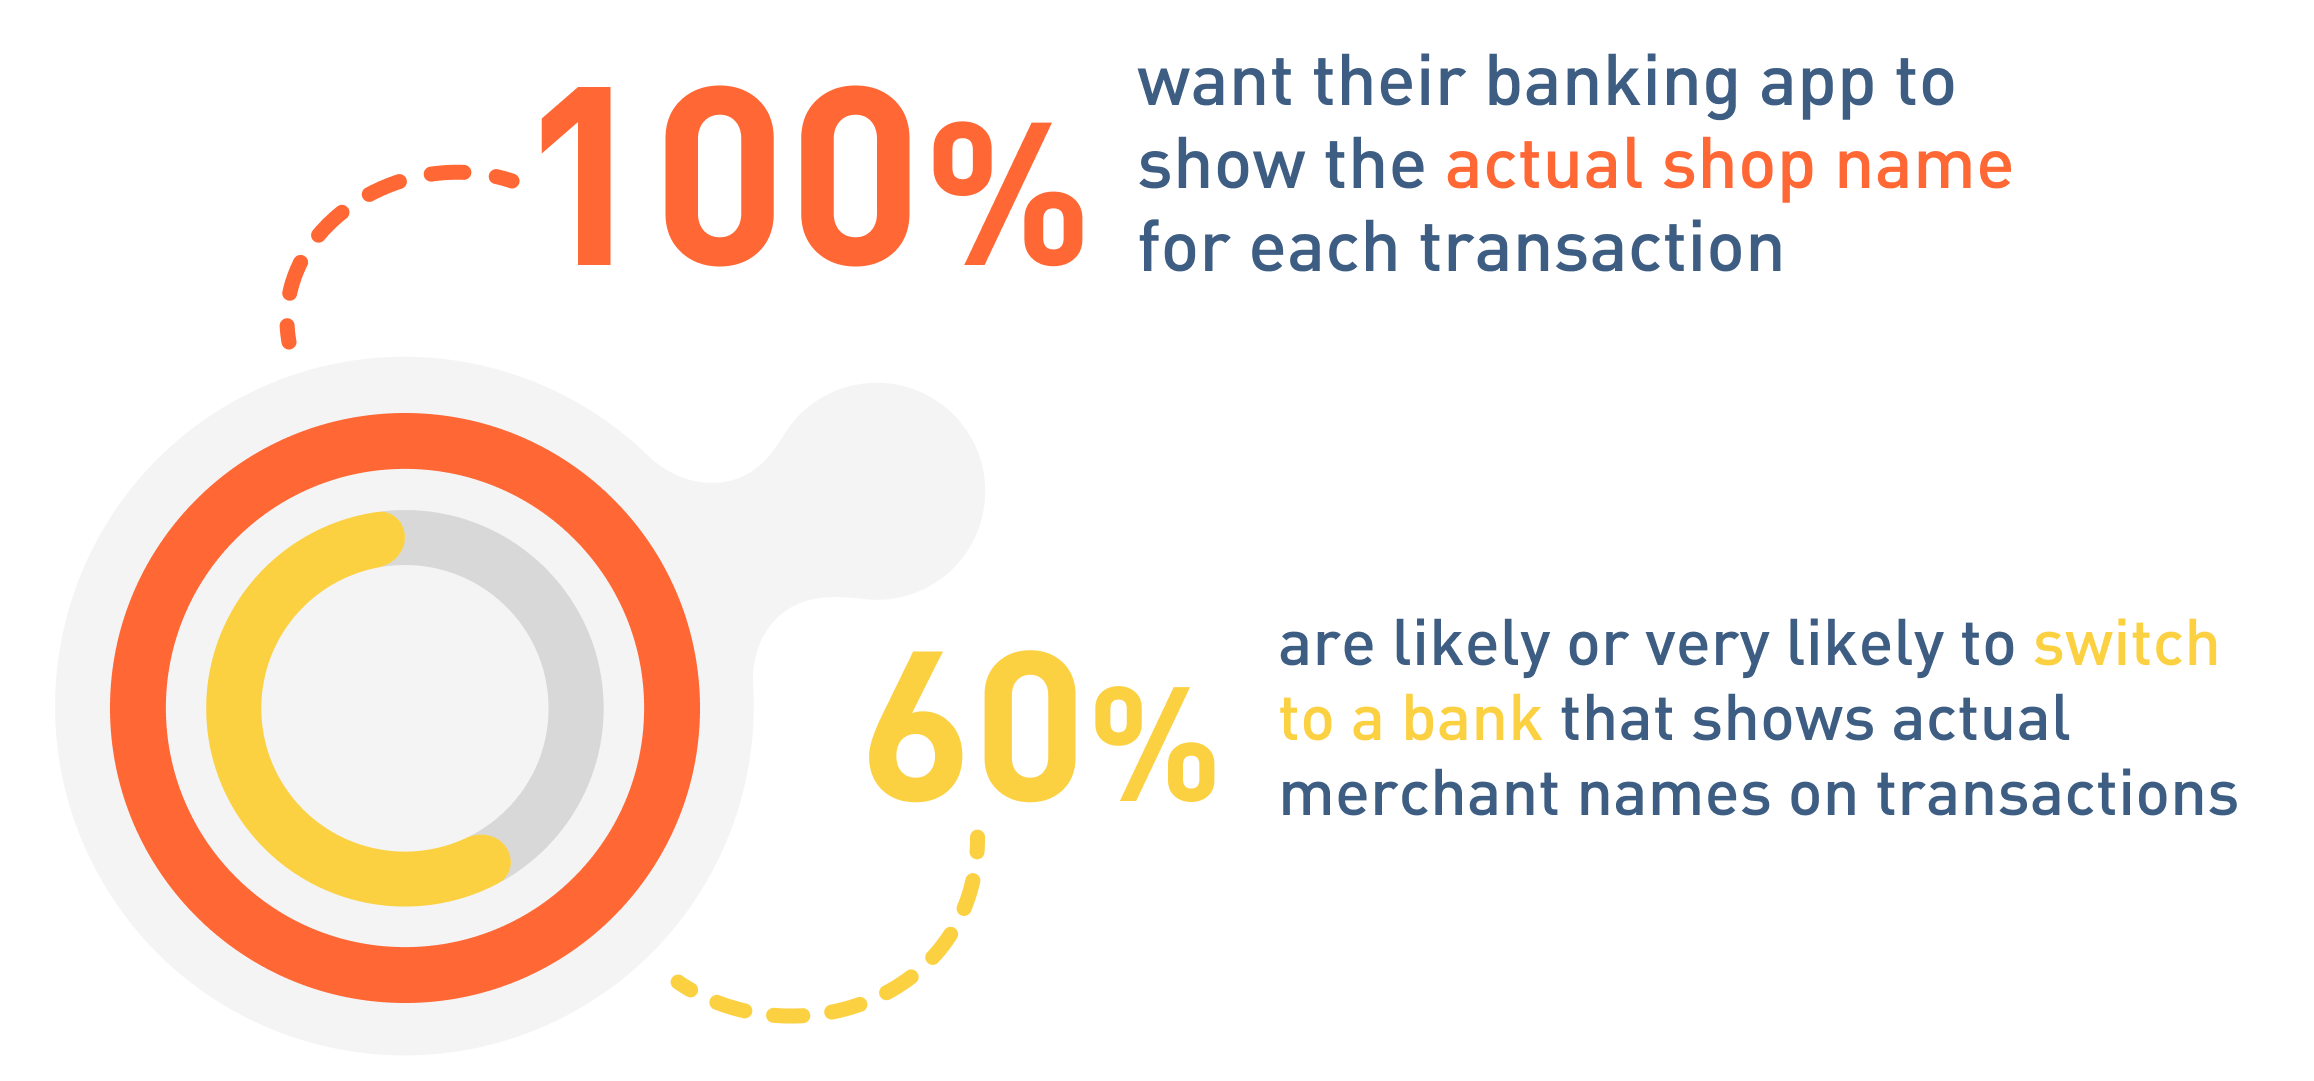 Customers want accurate transaction data from their banks